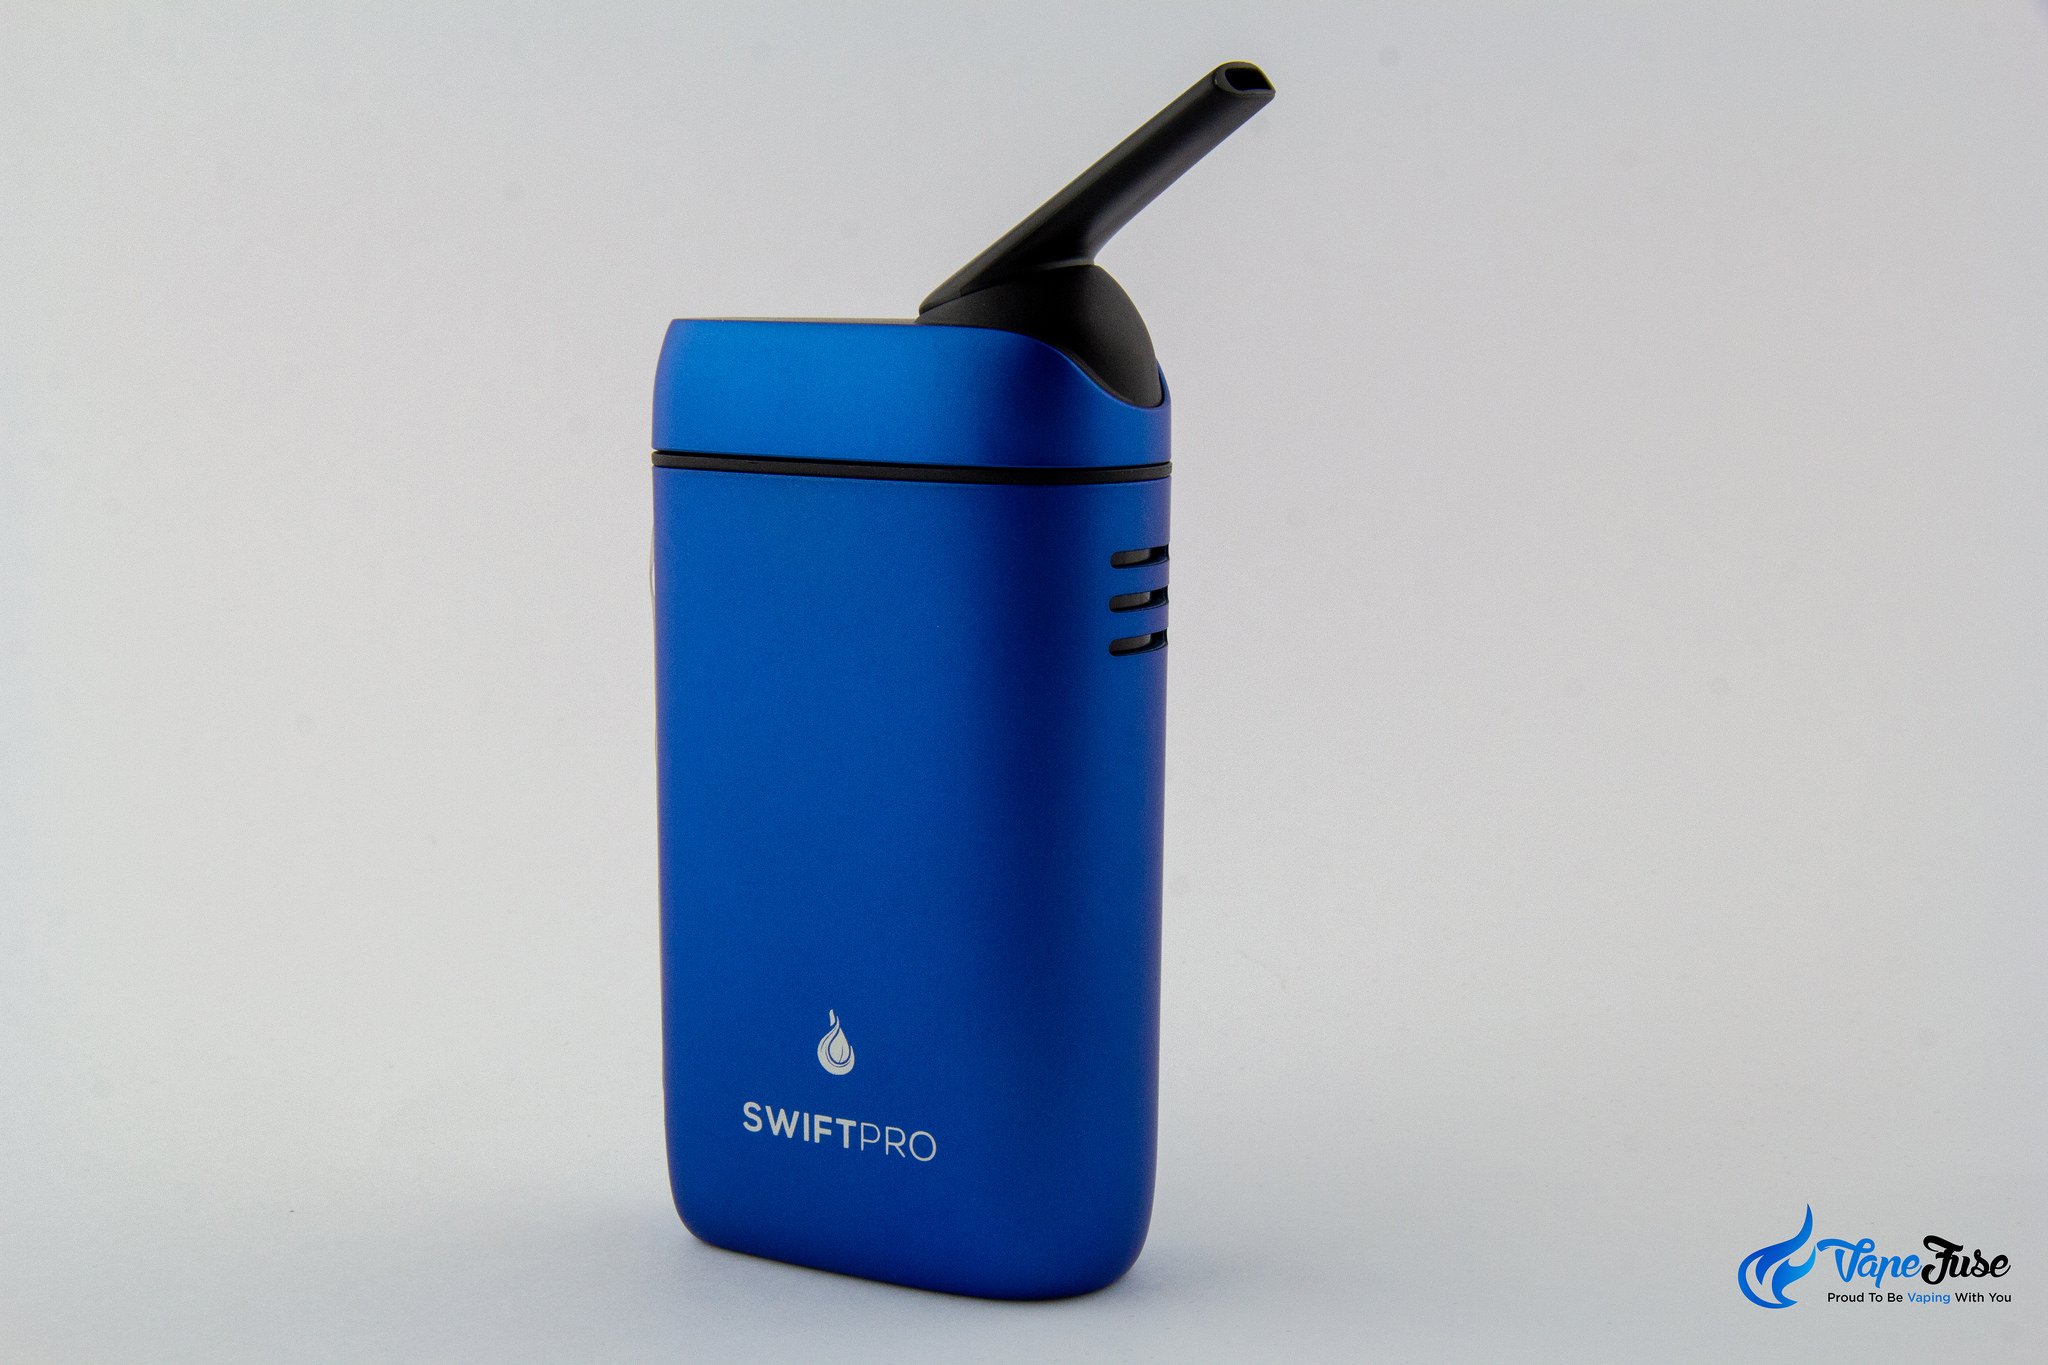 First Look: Flowermate Swift Pro Portable Vaporizer